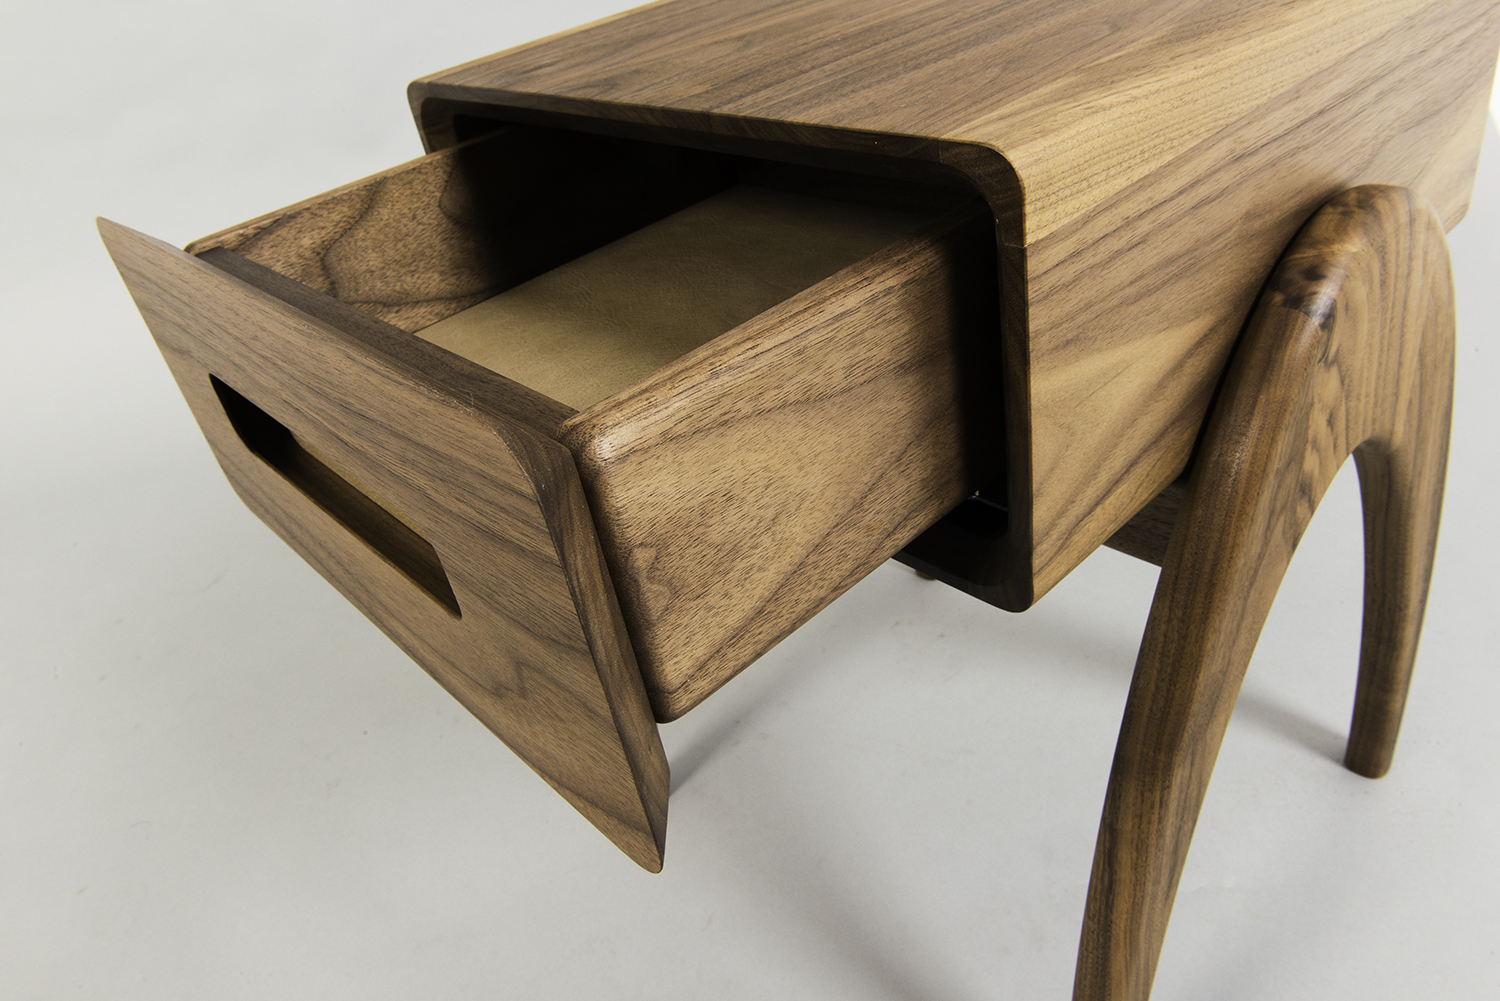 Retrospect Sidetable by Alan Flannery Furniture Design low12.jpg